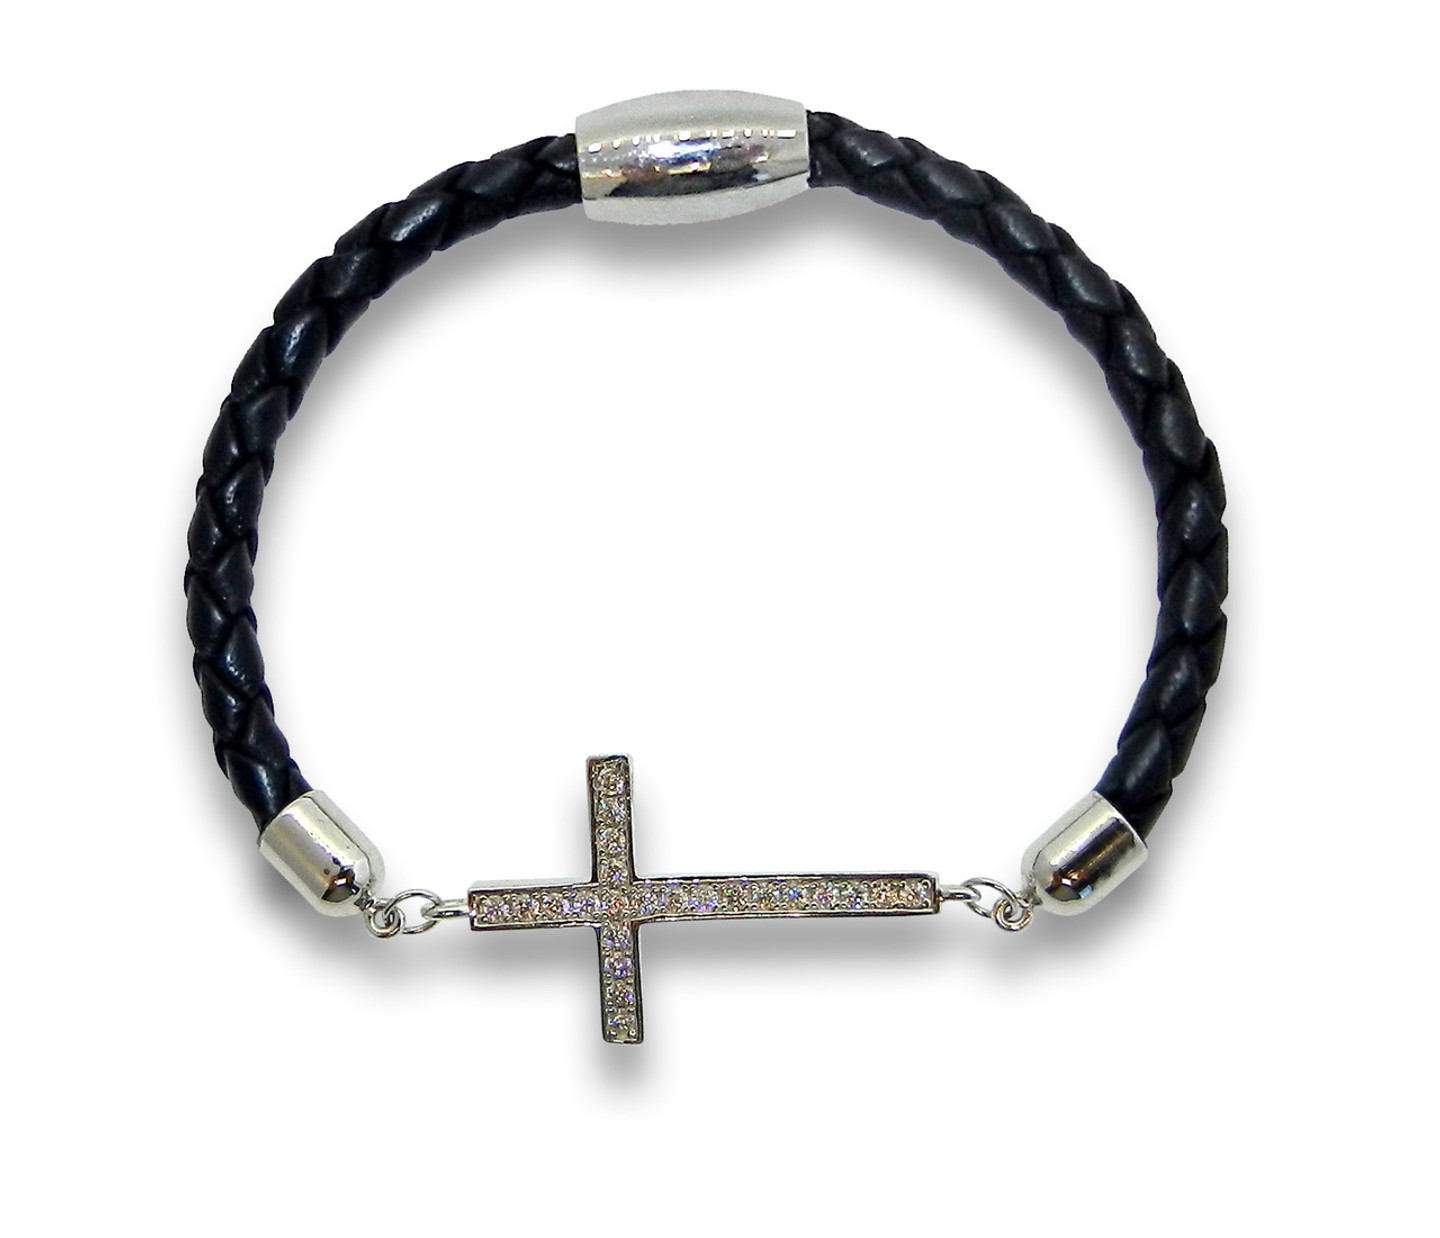 The Cross Bracelet